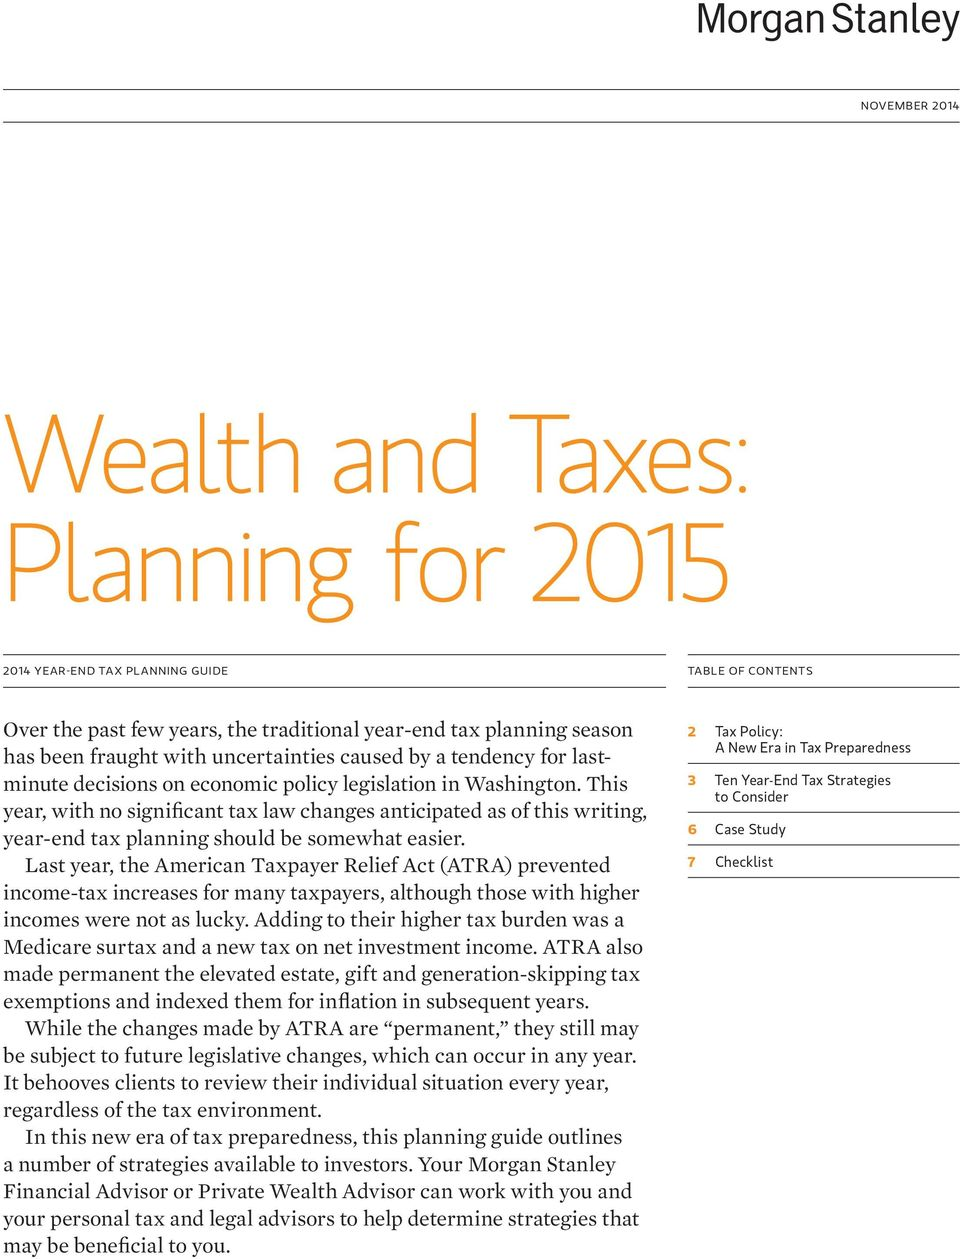 This year, with no significant tax law changes anticipated as of this writing, year-end tax planning should be somewhat easier.